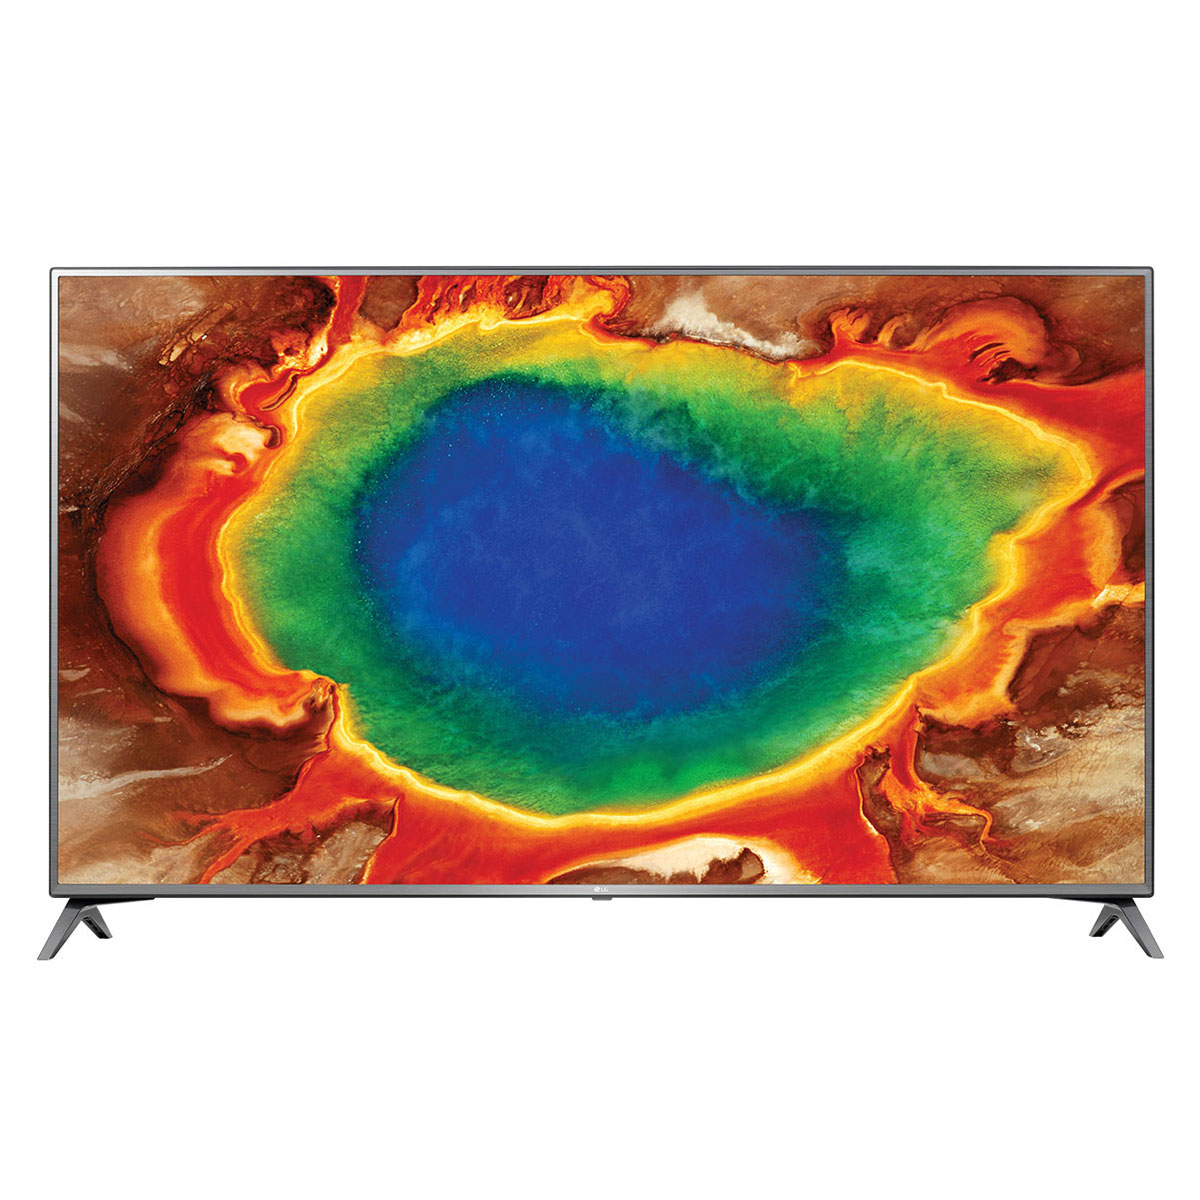 "TV LG 55UJ651V Téléviseur LED 4K 55"" (140 cm) 16/9 - 3840 x 2160 pixels - Ultra HD 2160p - HDR - 1900 Hz - Wi-Fi - Bluetooth - DLNA"